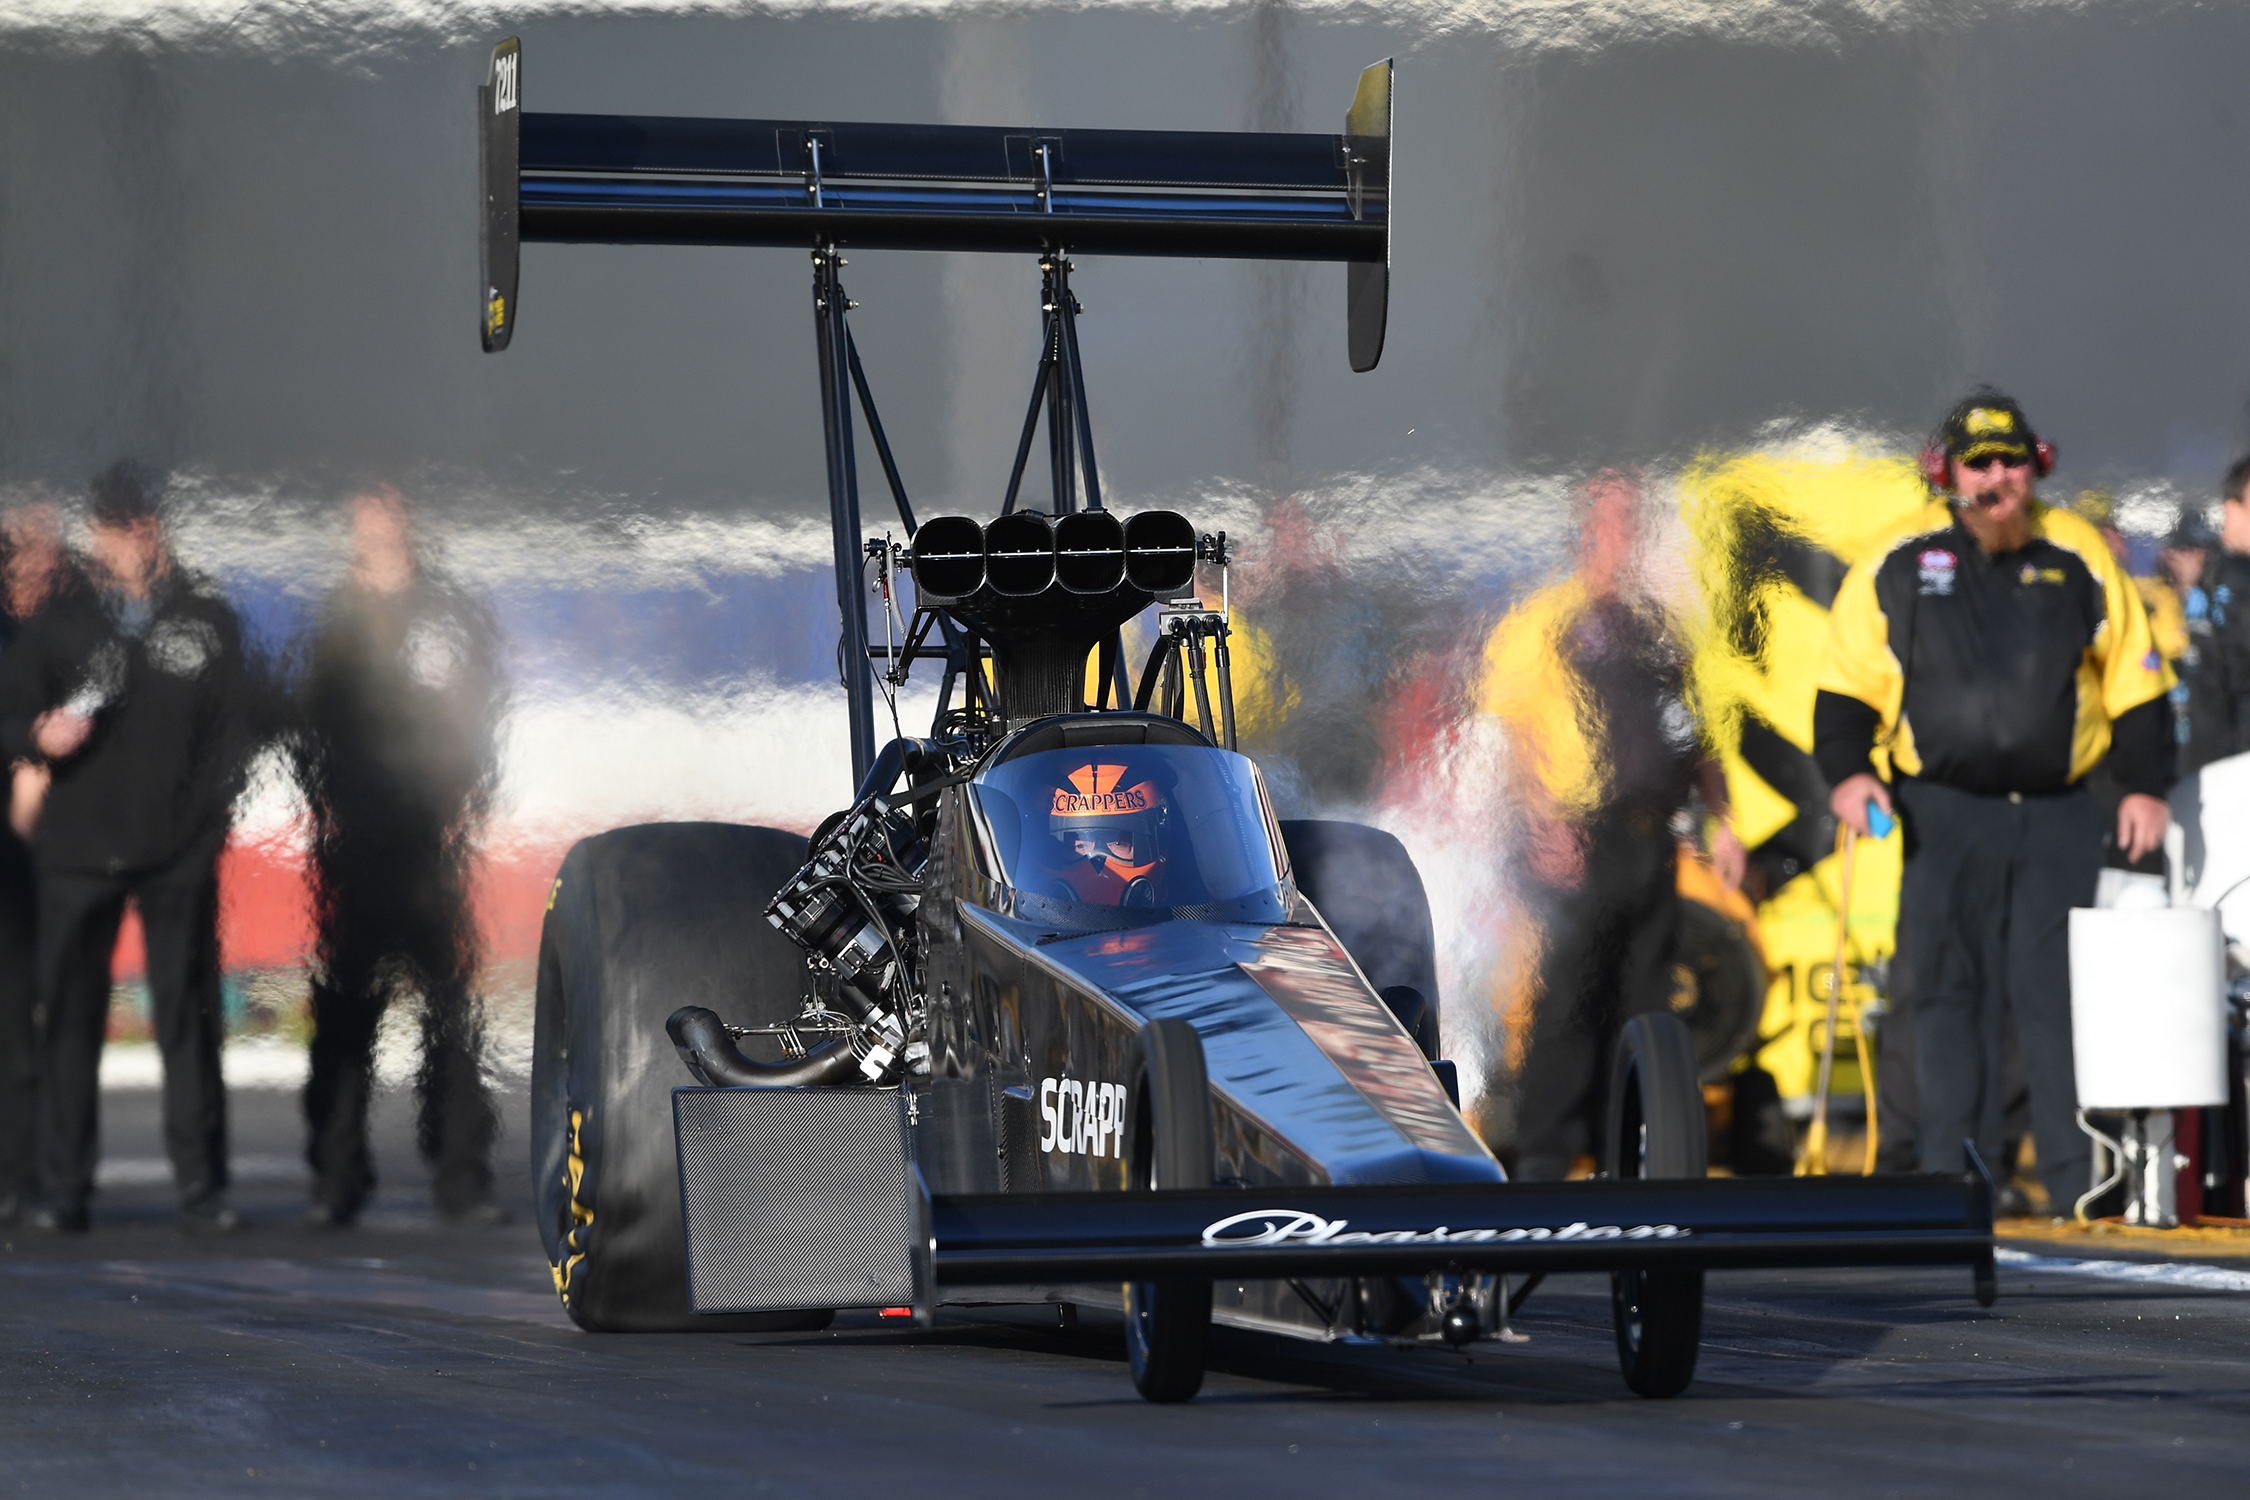 Top Fuel Dragster pilot Mike Salinas racing at the Lucas Oil NHRA Winternationals presented by ProtectTheHarvest.com